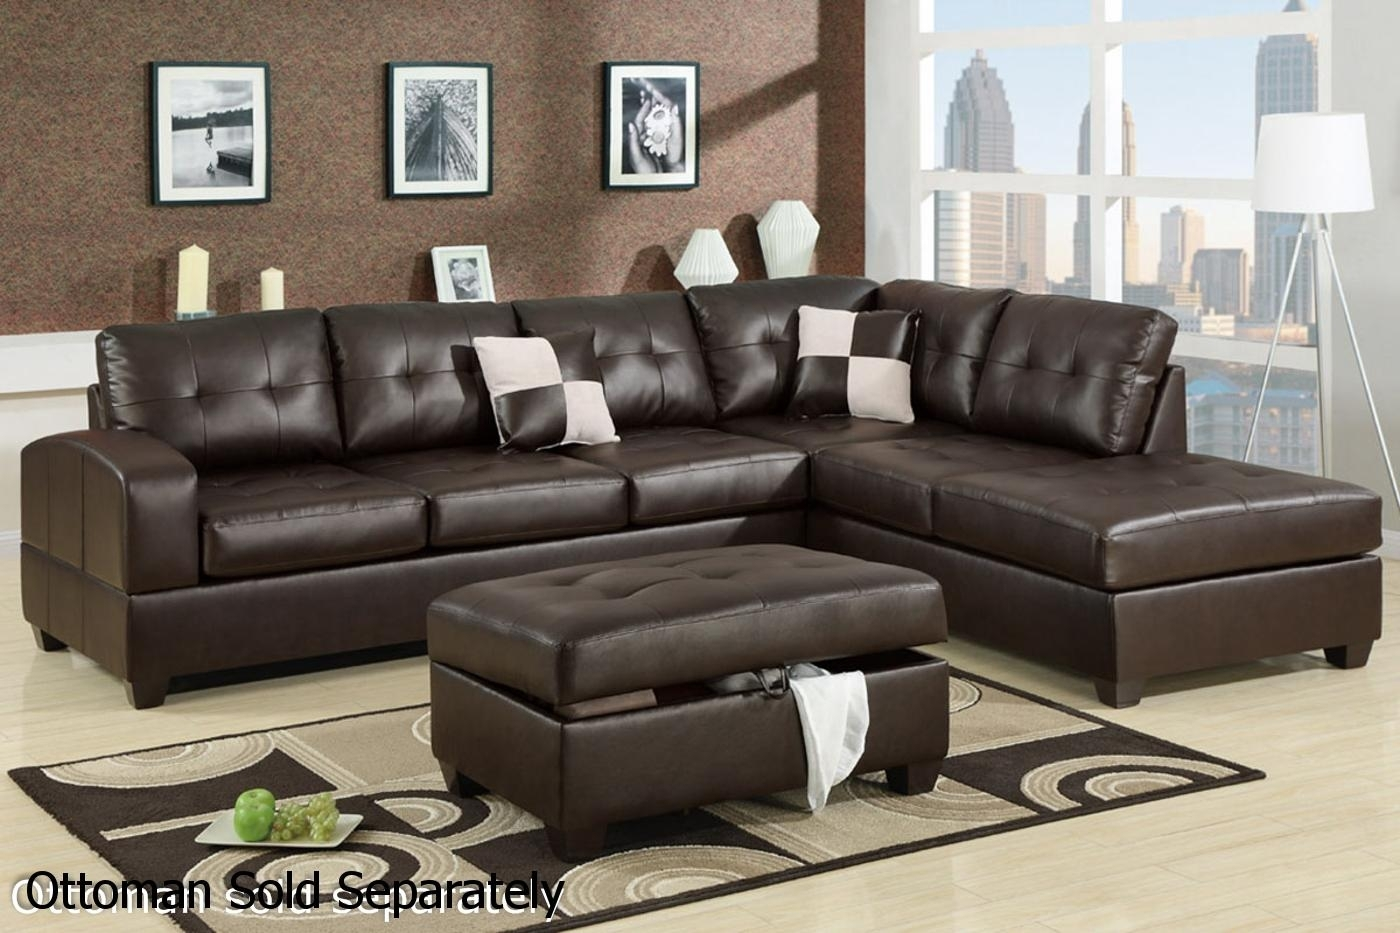 10 Top Leather Sectional Sofas